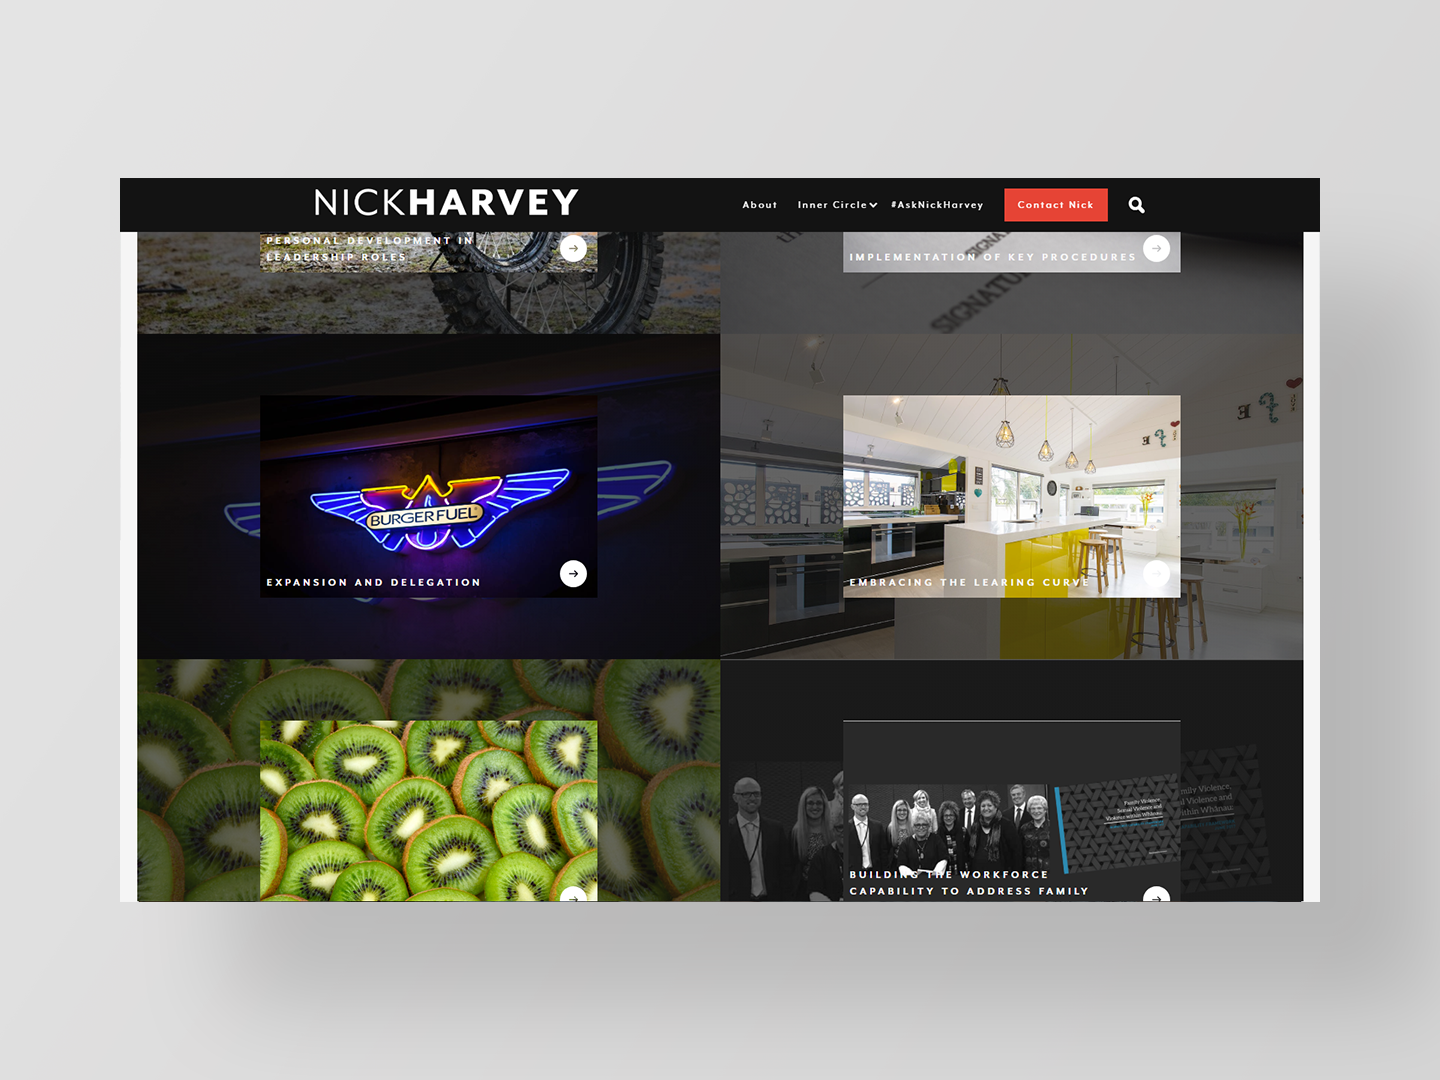 Nick Harvey - Website design by Neon Hive